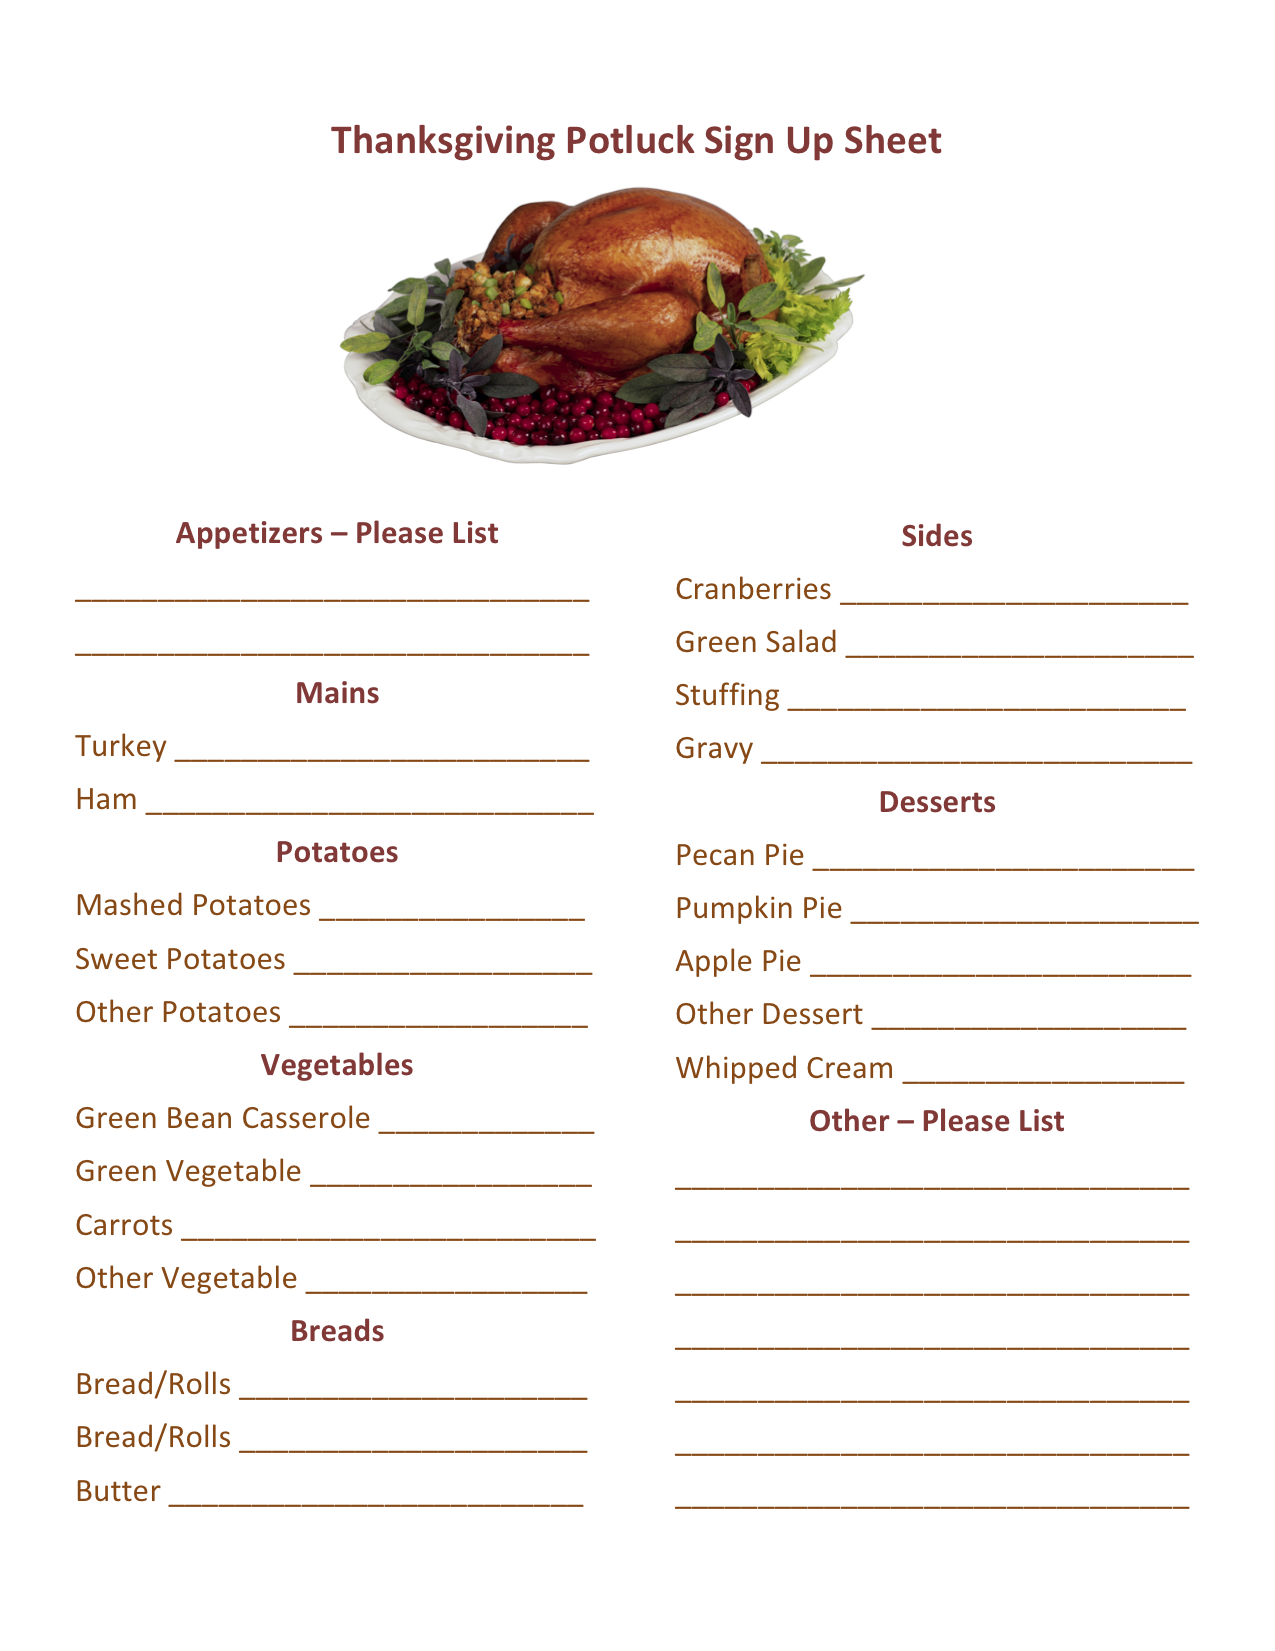 image regarding Potluck Signup Sheet Printable titled Printable Thanksgiving Potluck Signal Up Sheet Template - Cost-free